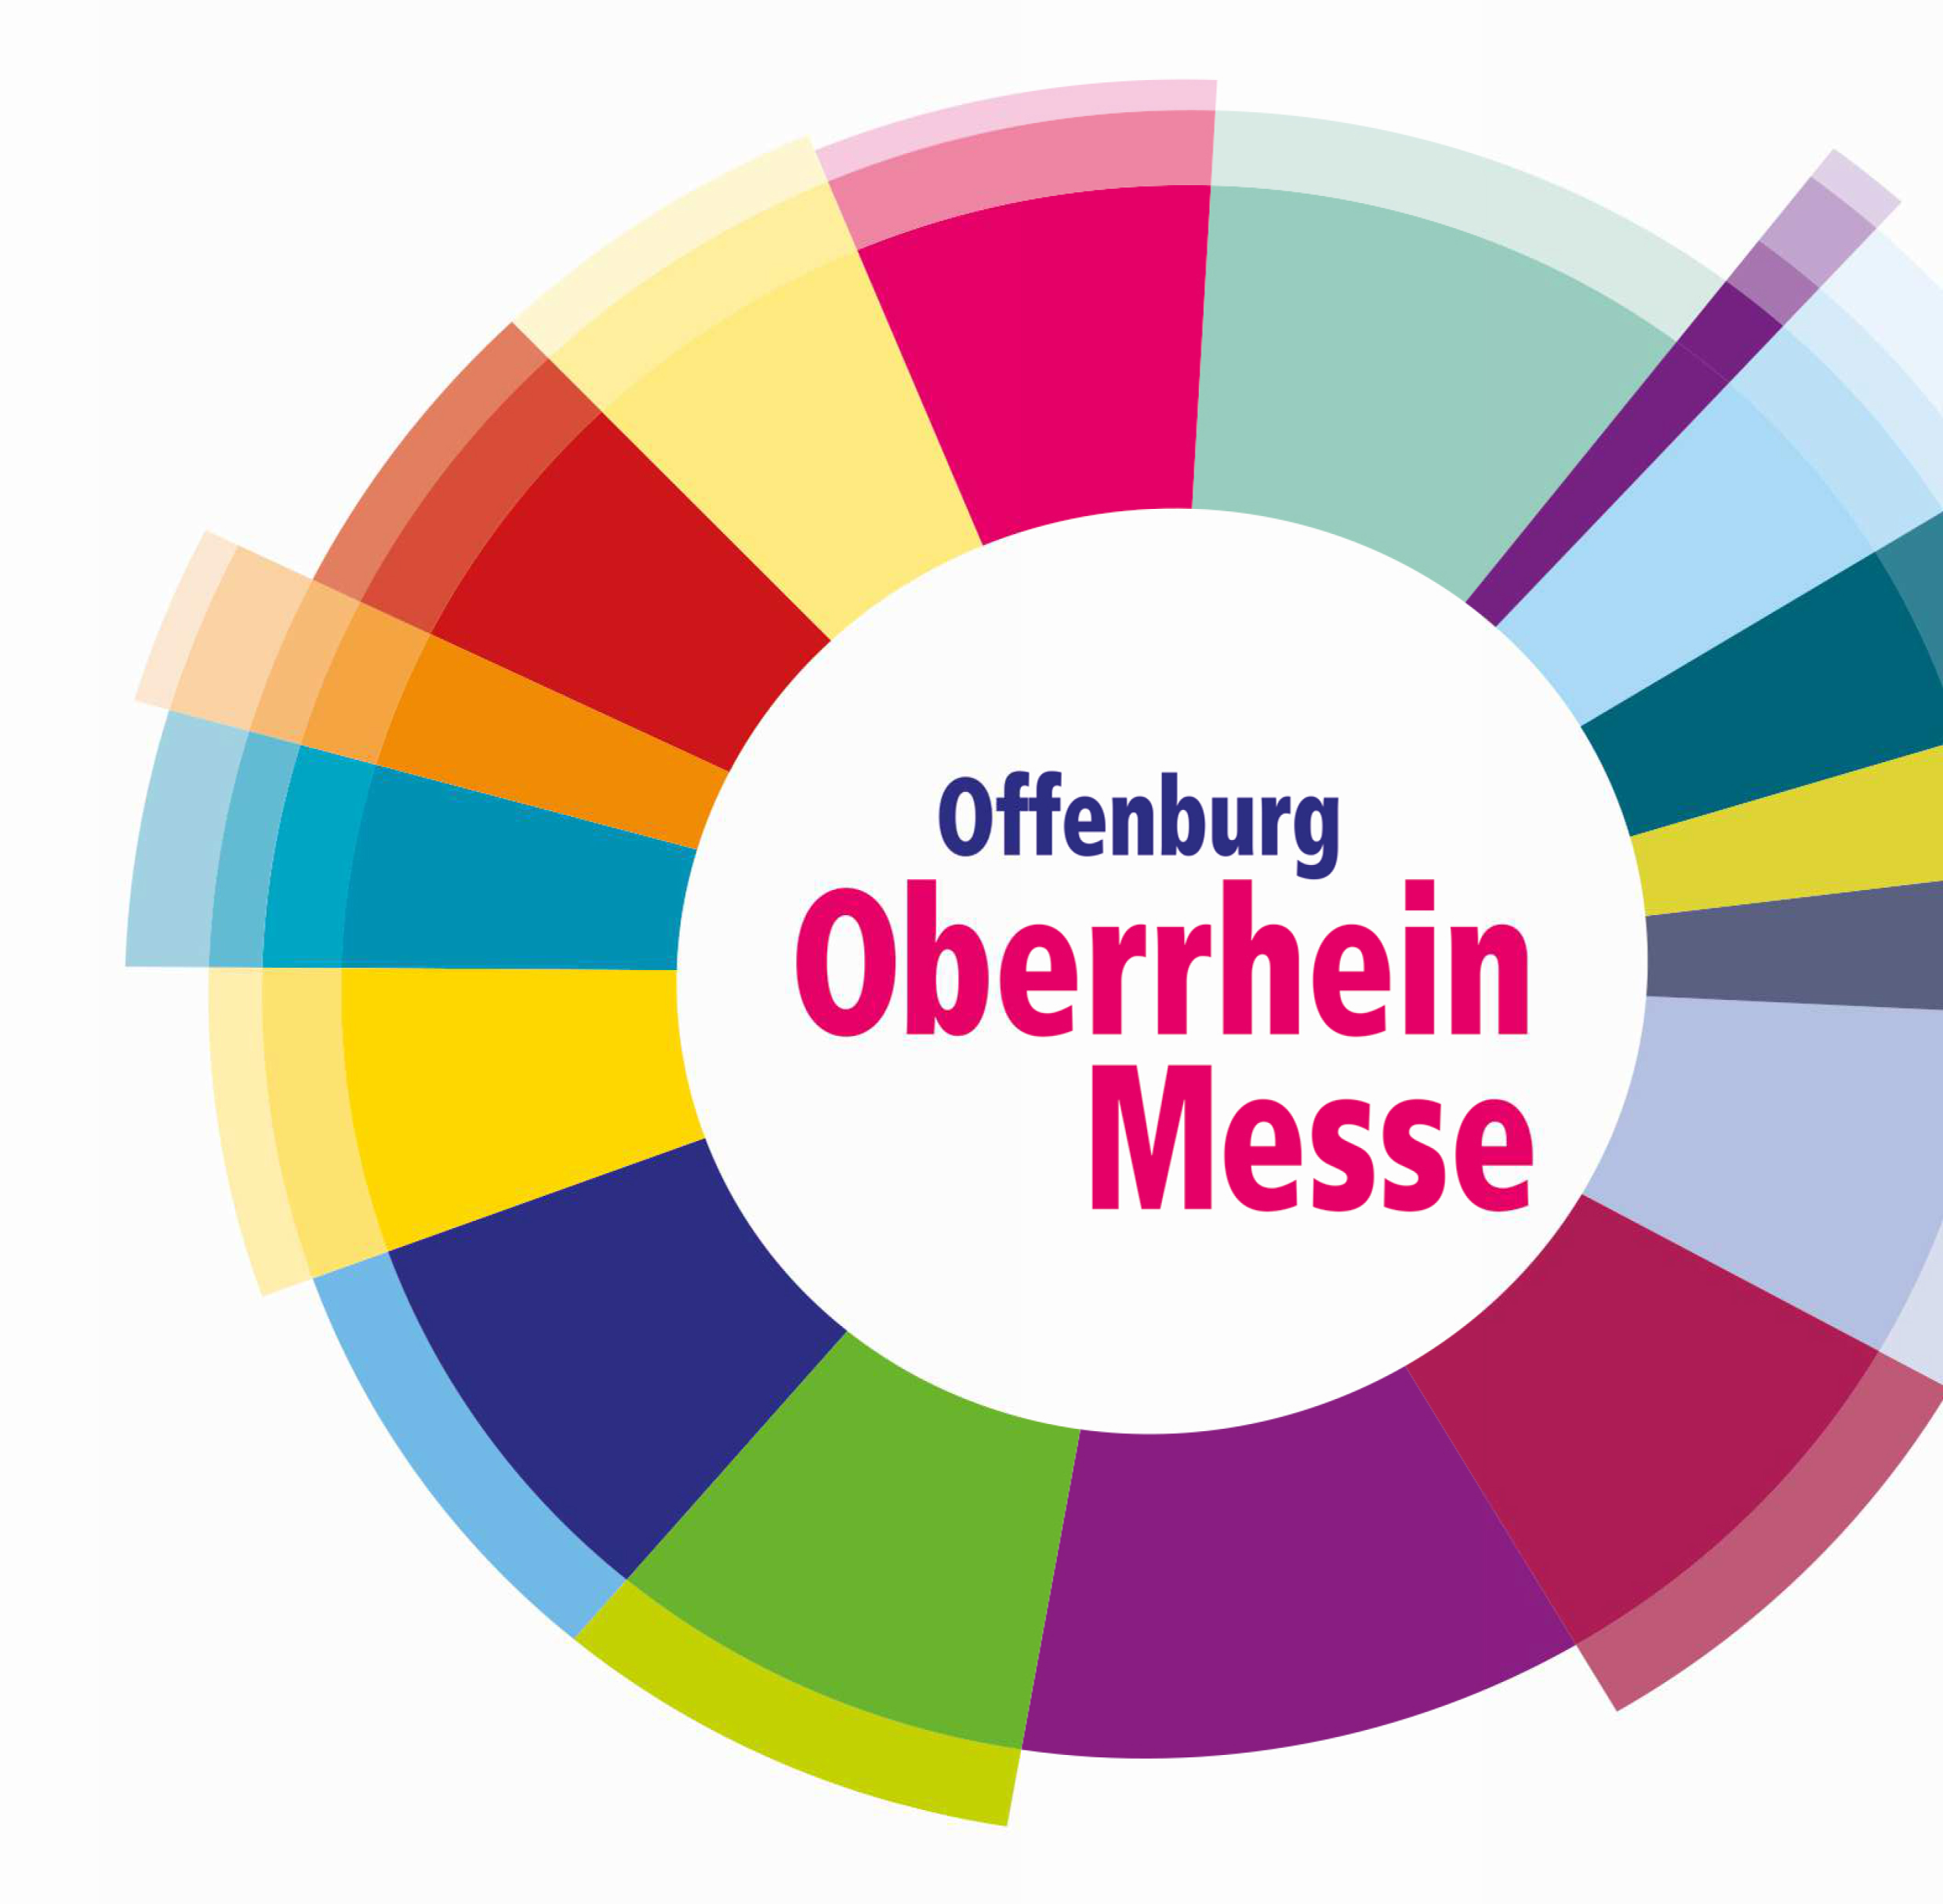 Messe Oberrhein in Offenburg